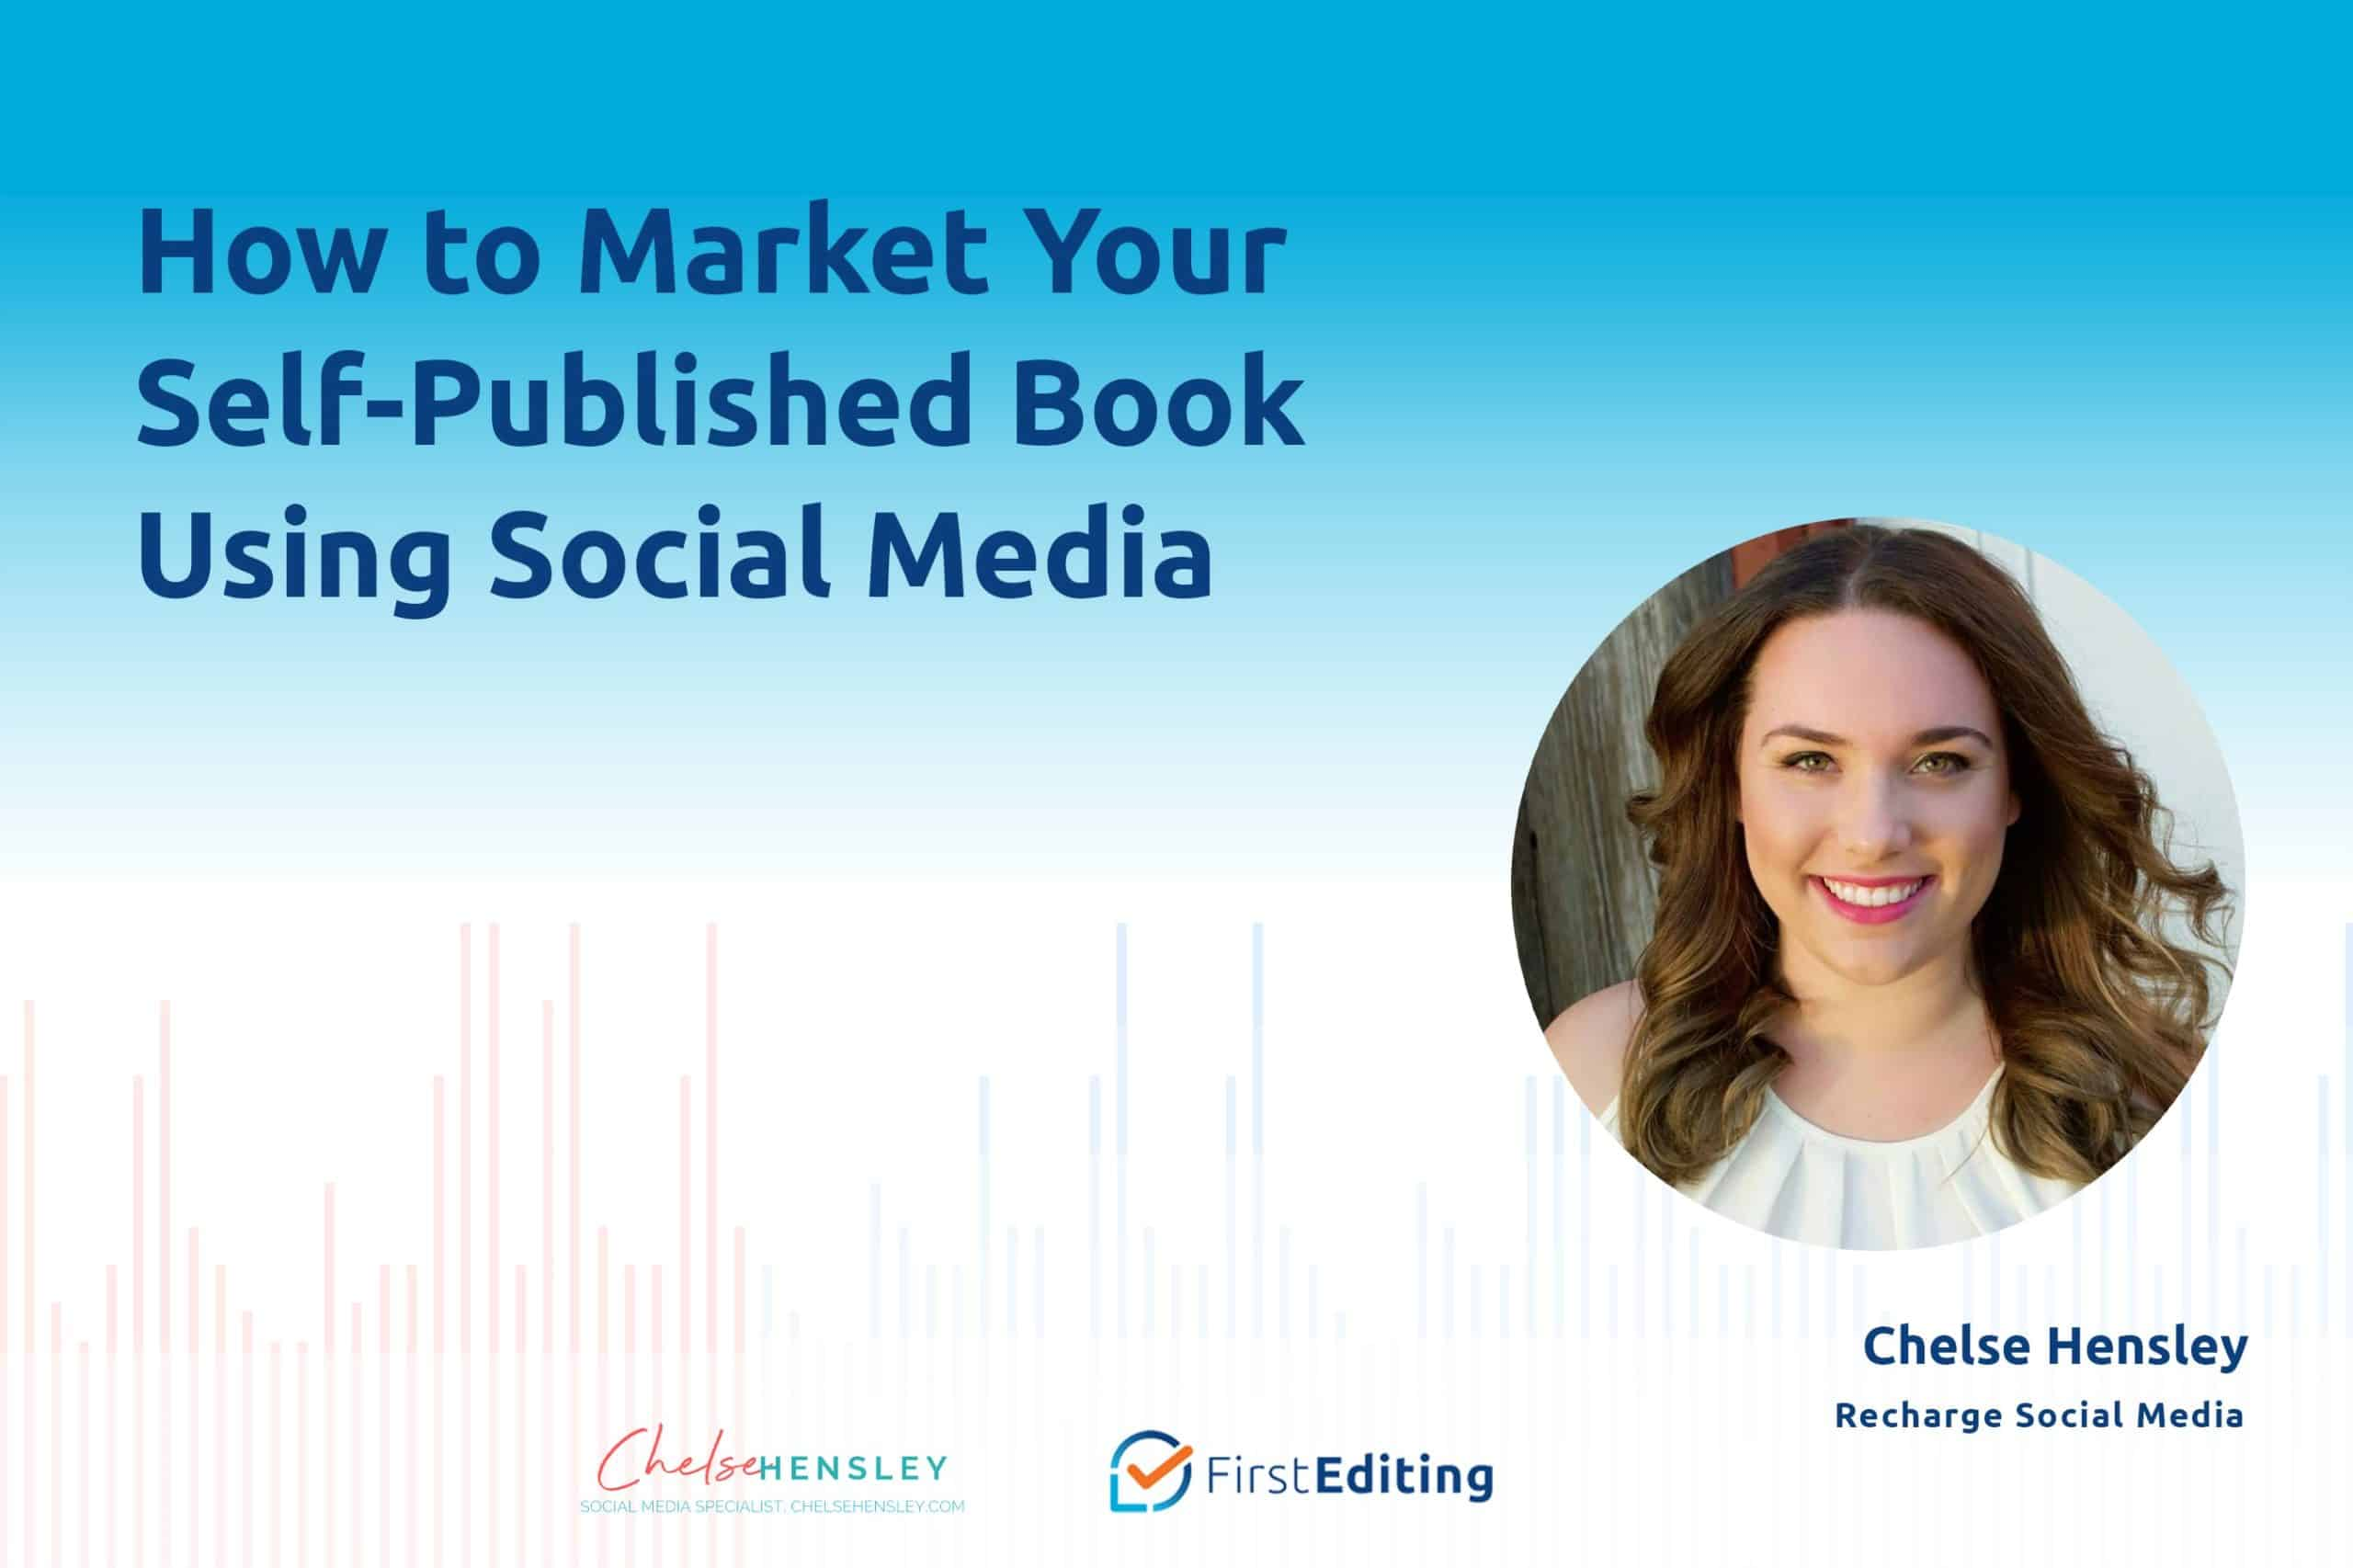 How to Market Your Self-Published Book Using Social Media with Chelse Hensley